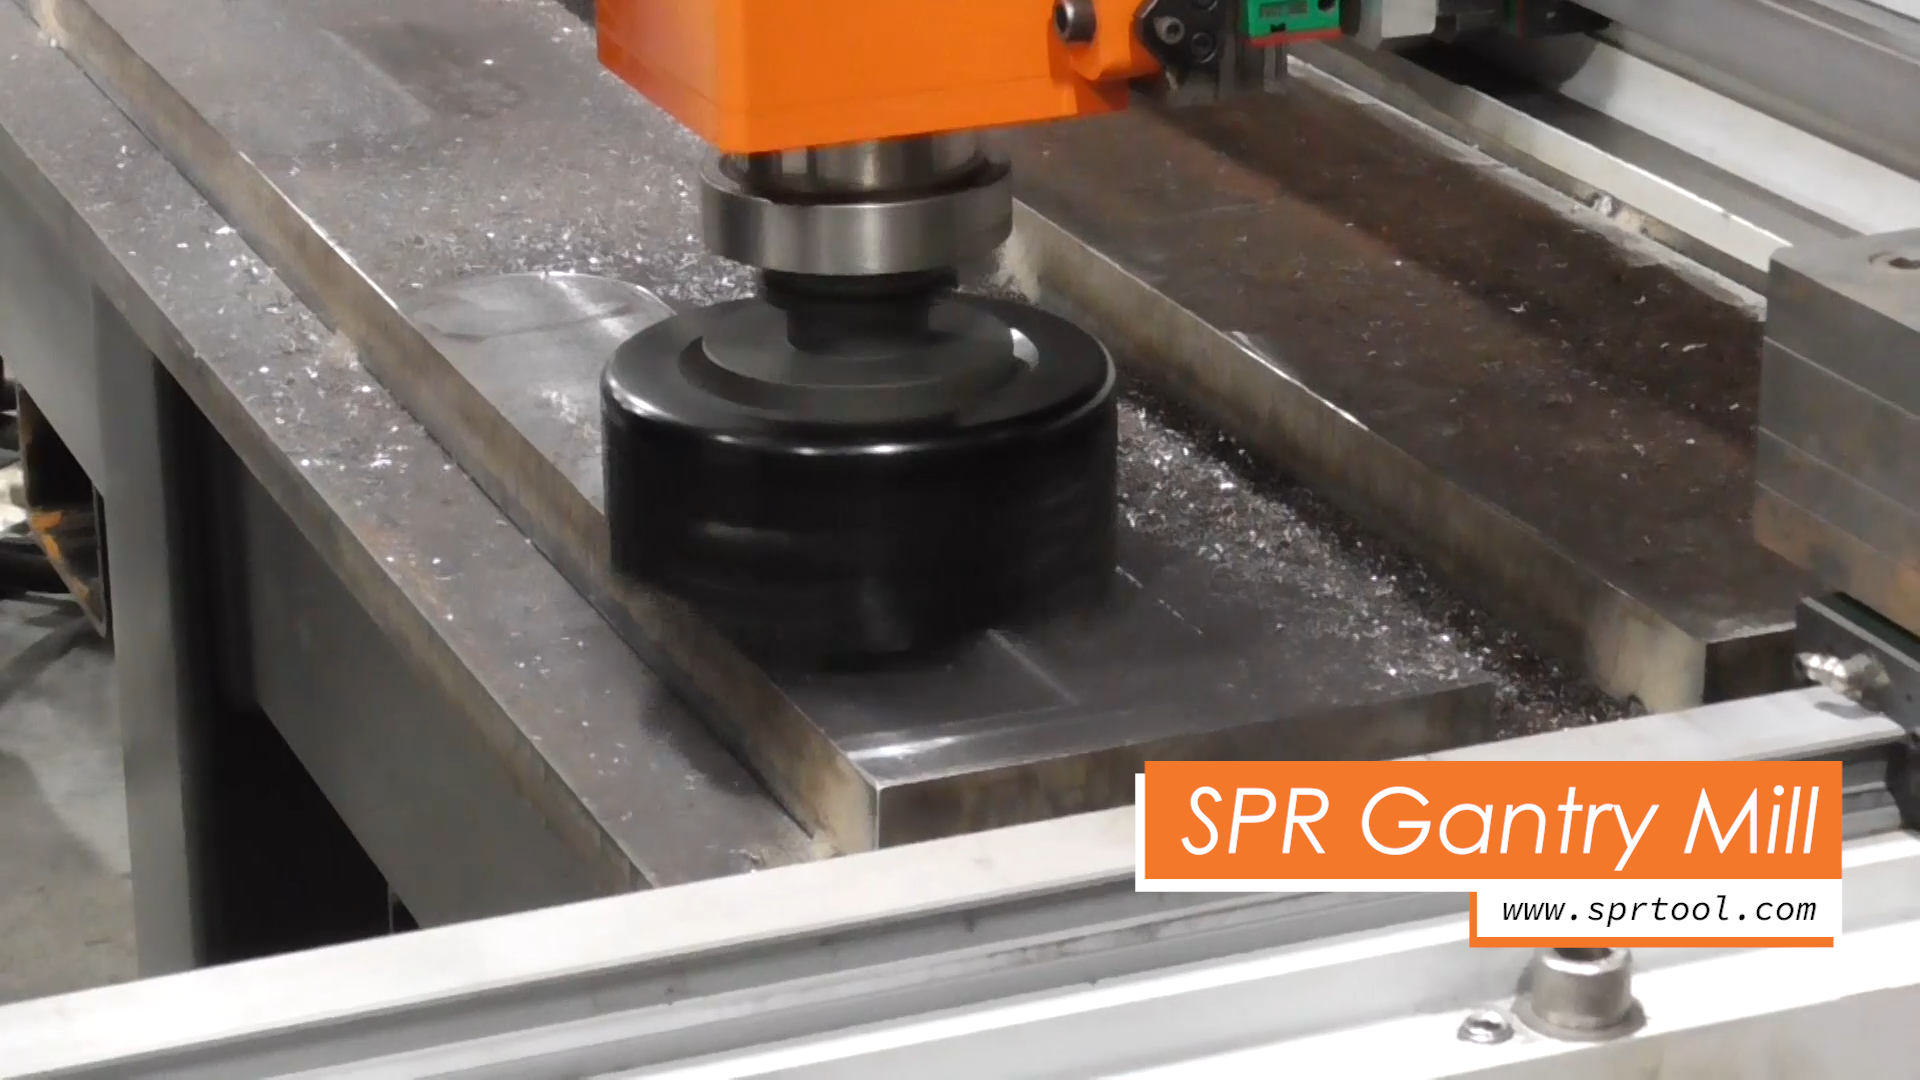 SPR's Portable Gantry Mill - Endless Possibilities